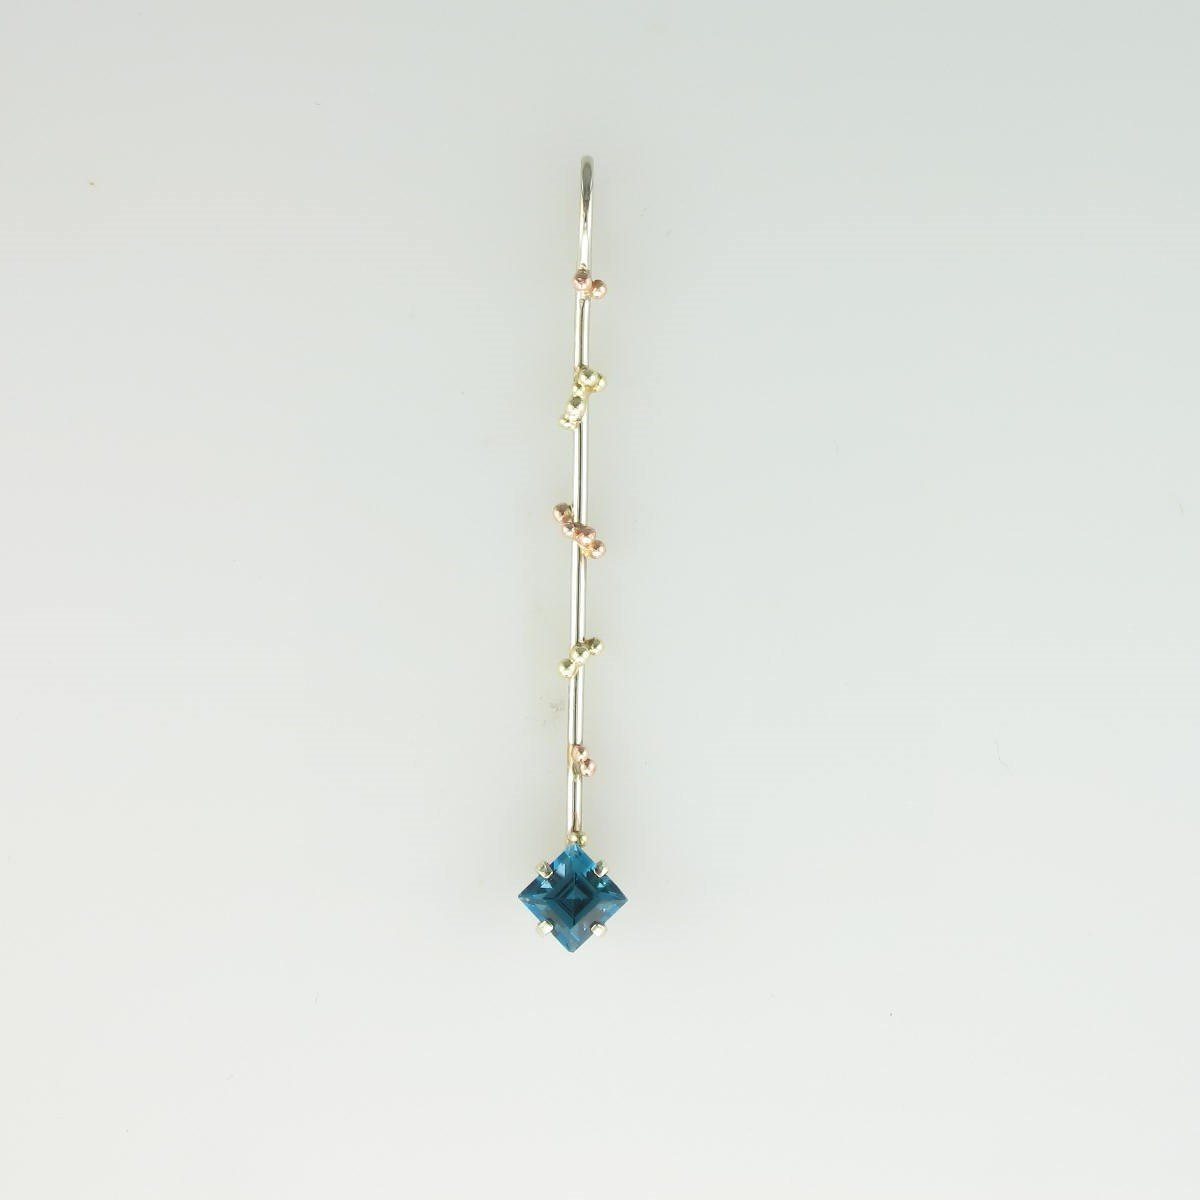 1.0ct Blue Zircon set in 14K White Gold